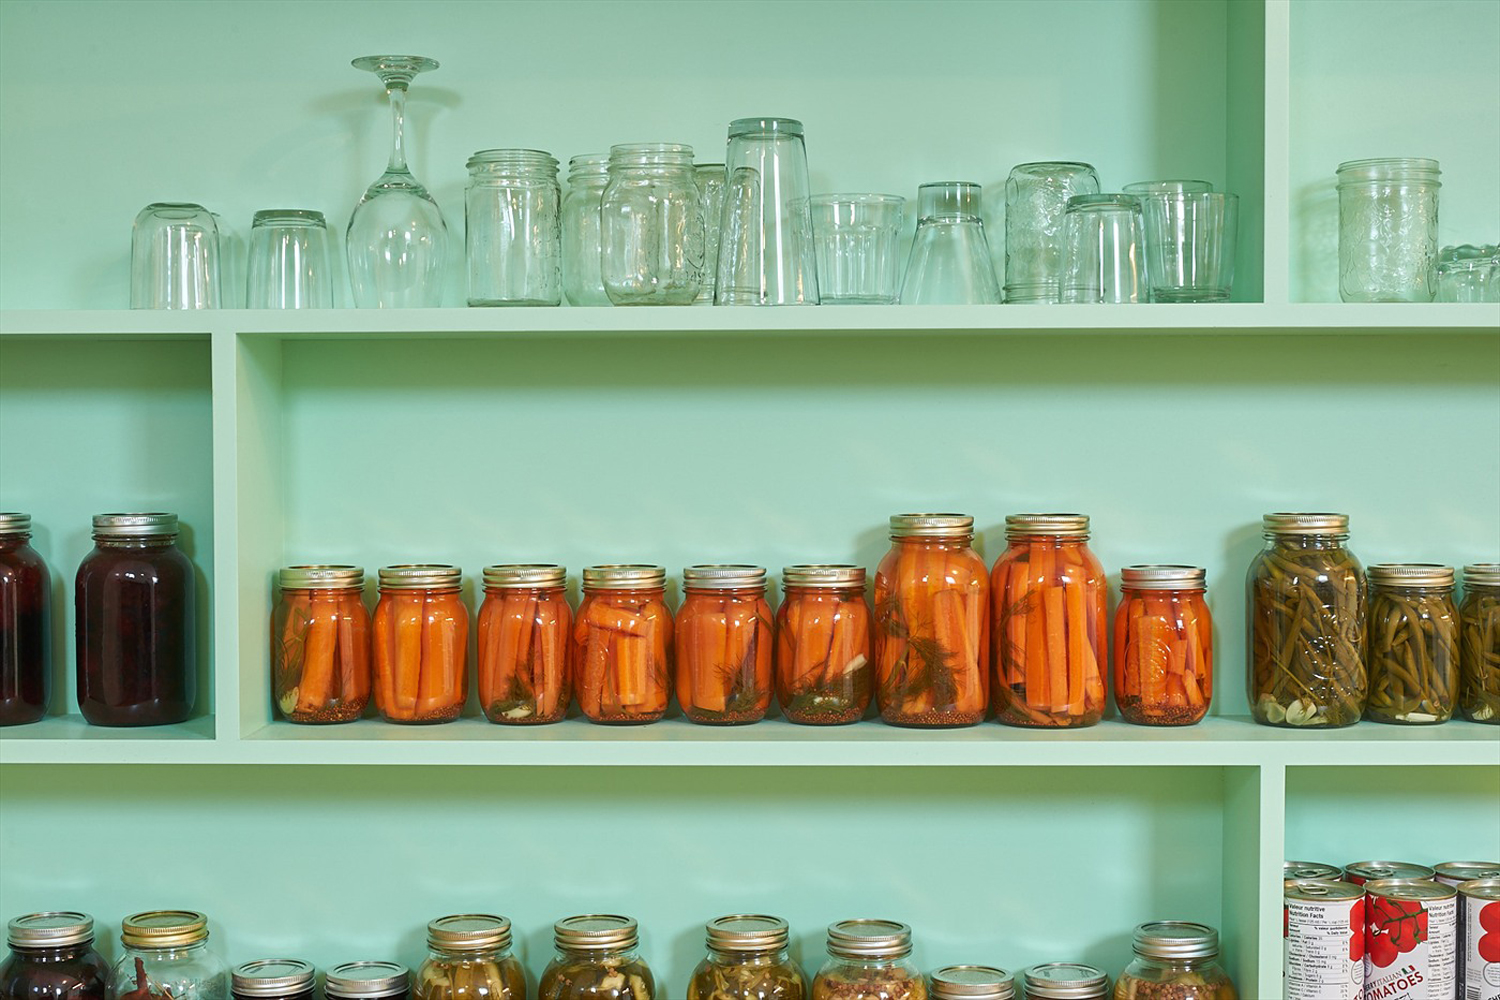 Library / shelves made to measure. Cannage and mason jars.